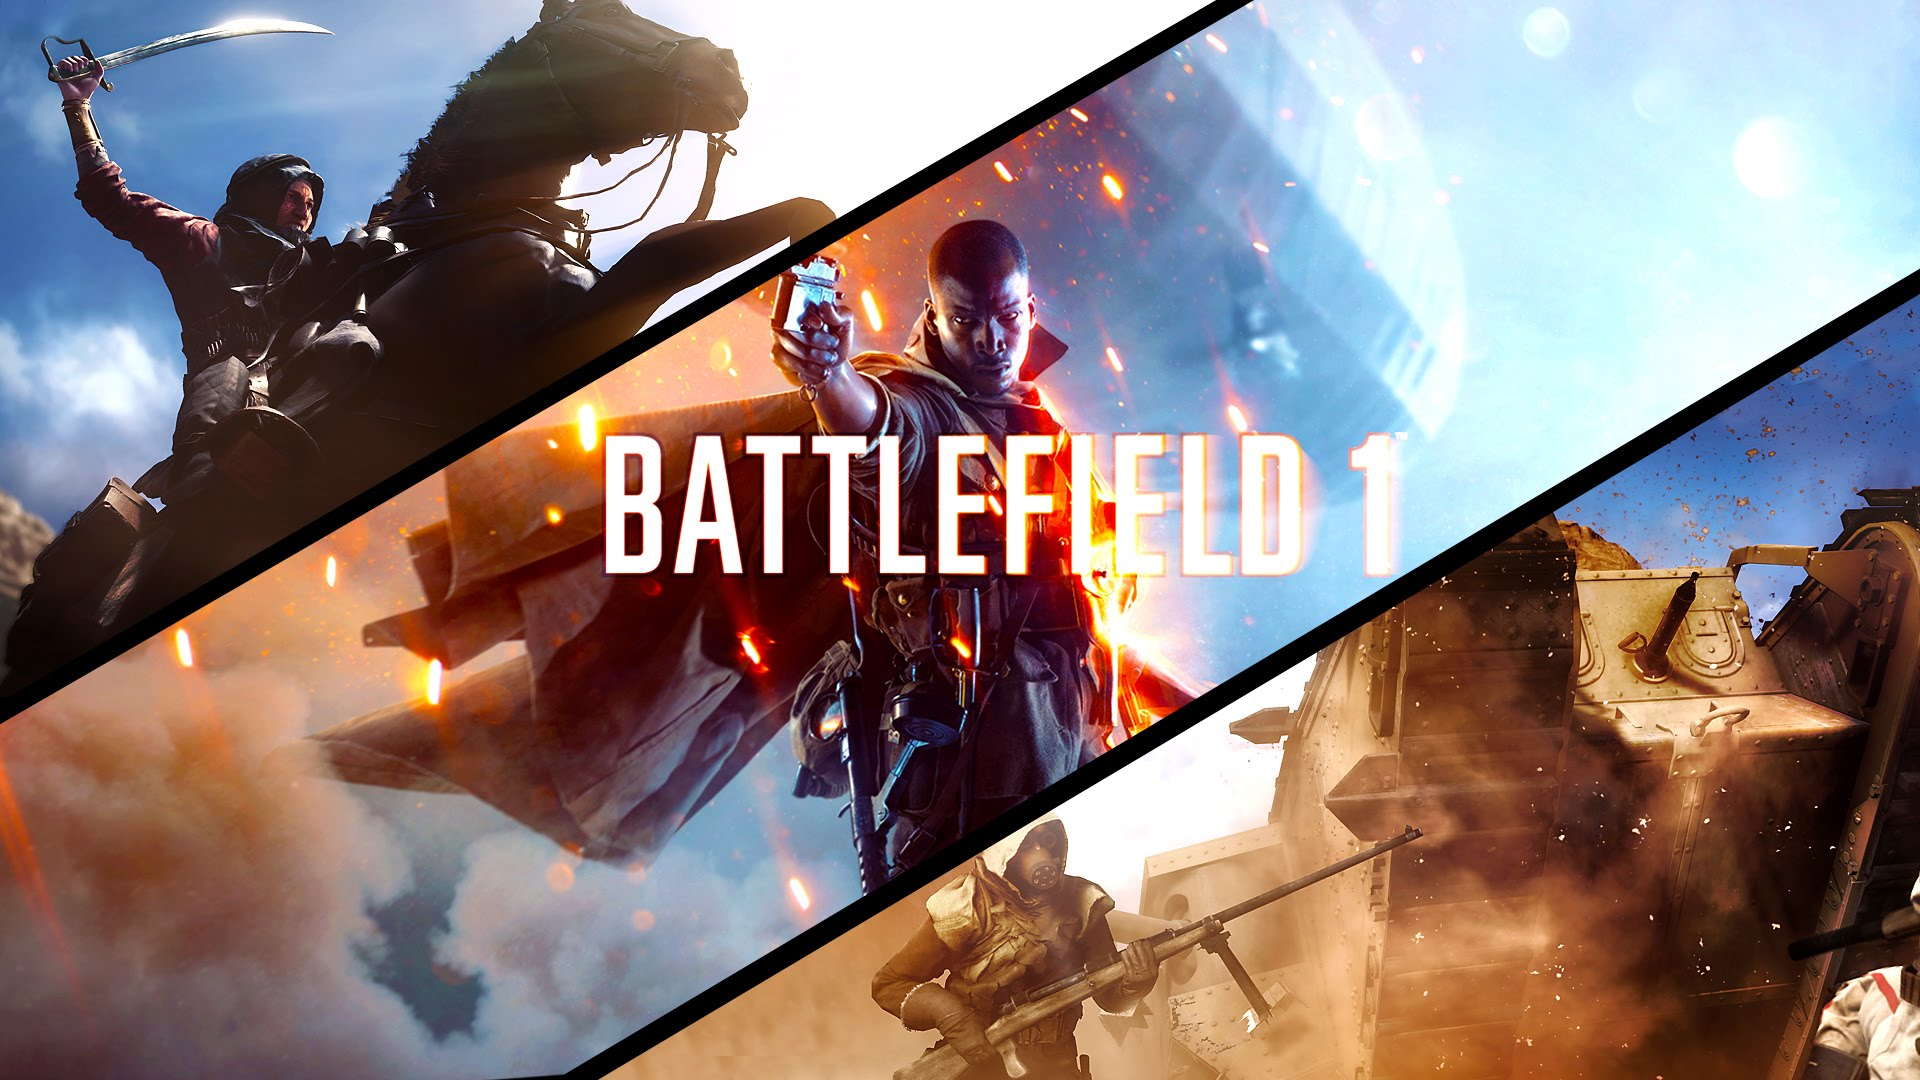 Battlefield 1 [Origin + GUARANTEE]